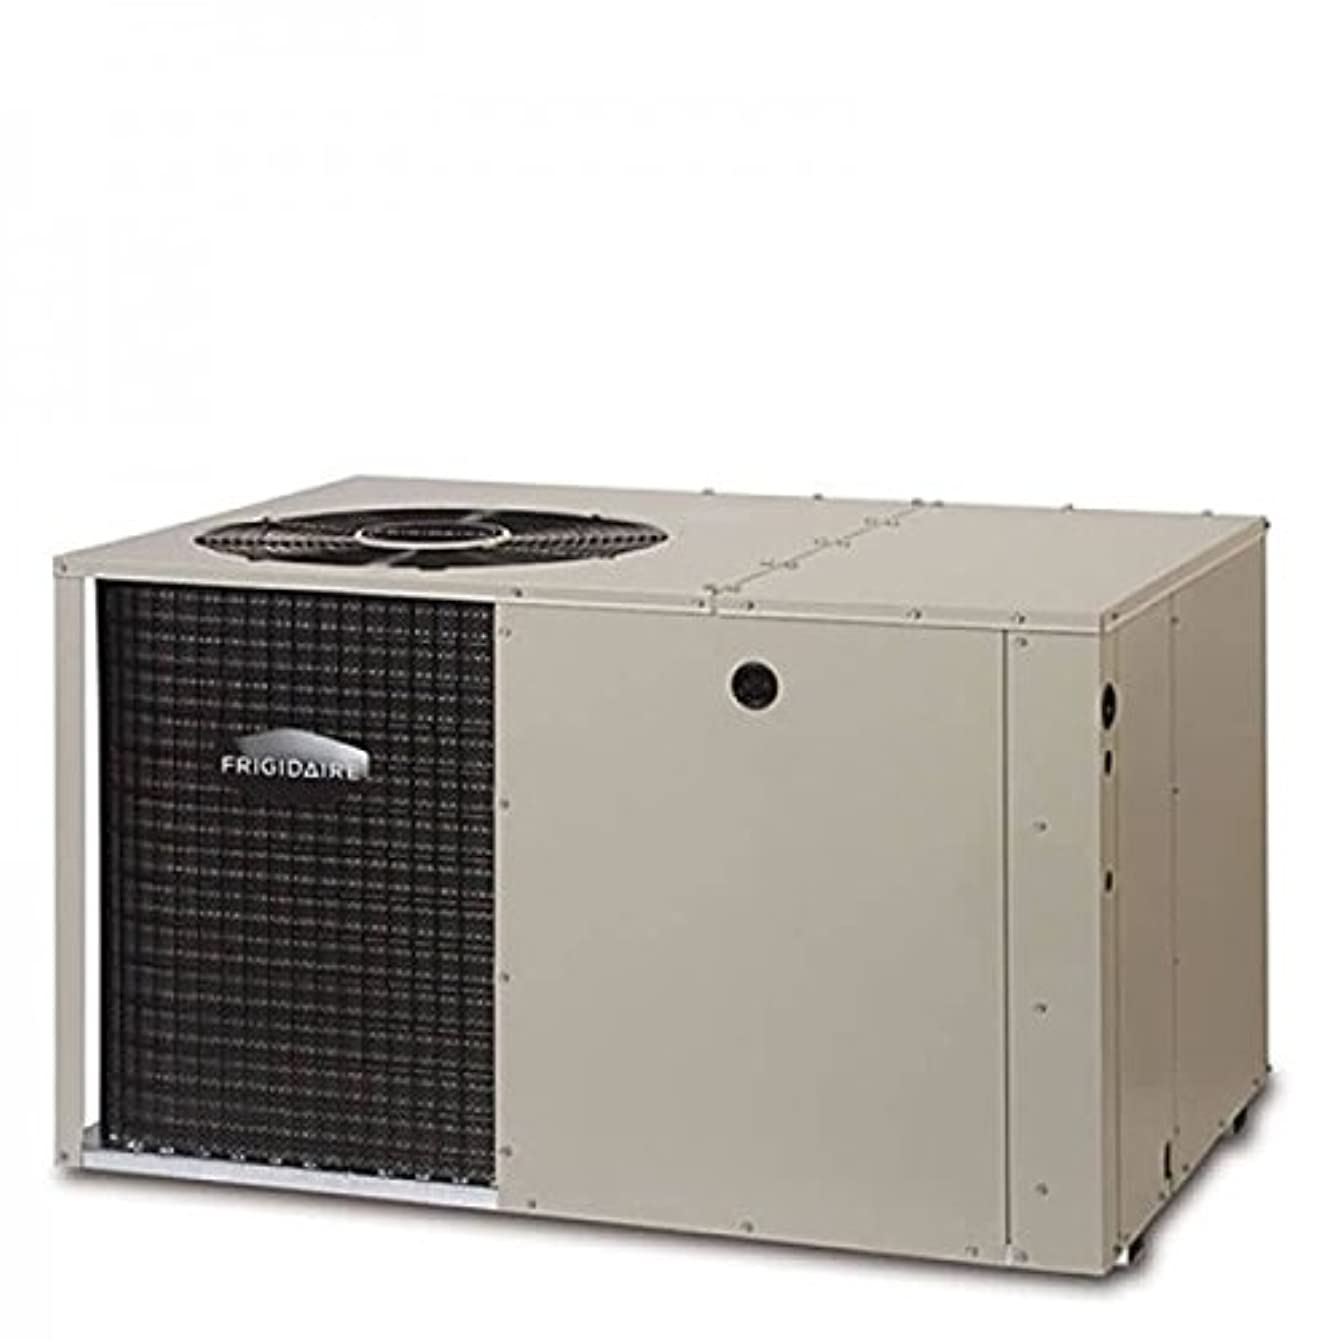 2.5 Ton Frigidaire 14 SEER R410A Air Conditioner Packaged Unit (No Heat Strip)